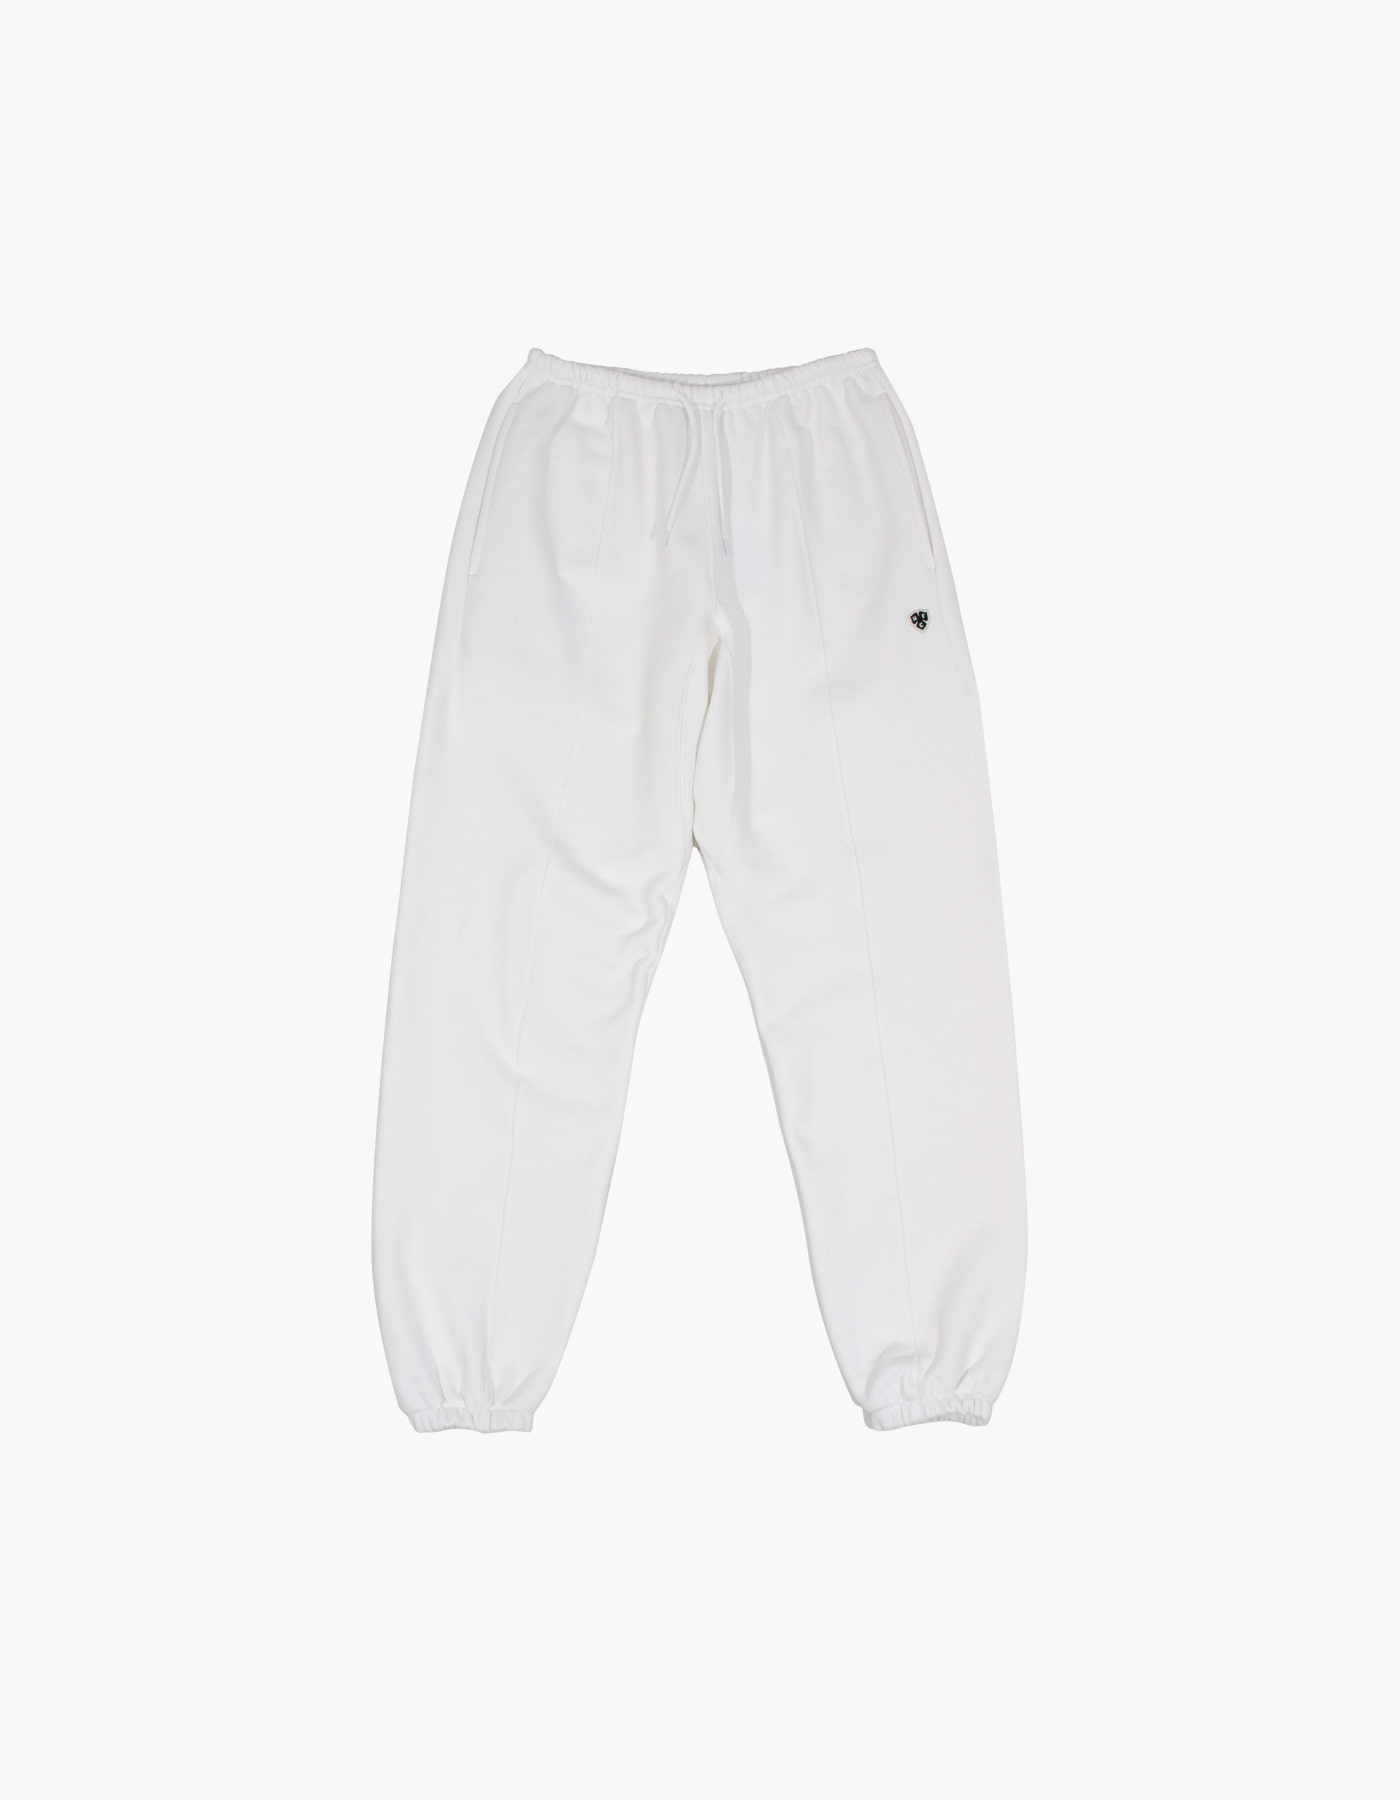 ACS SWEATPANTS / WHITE